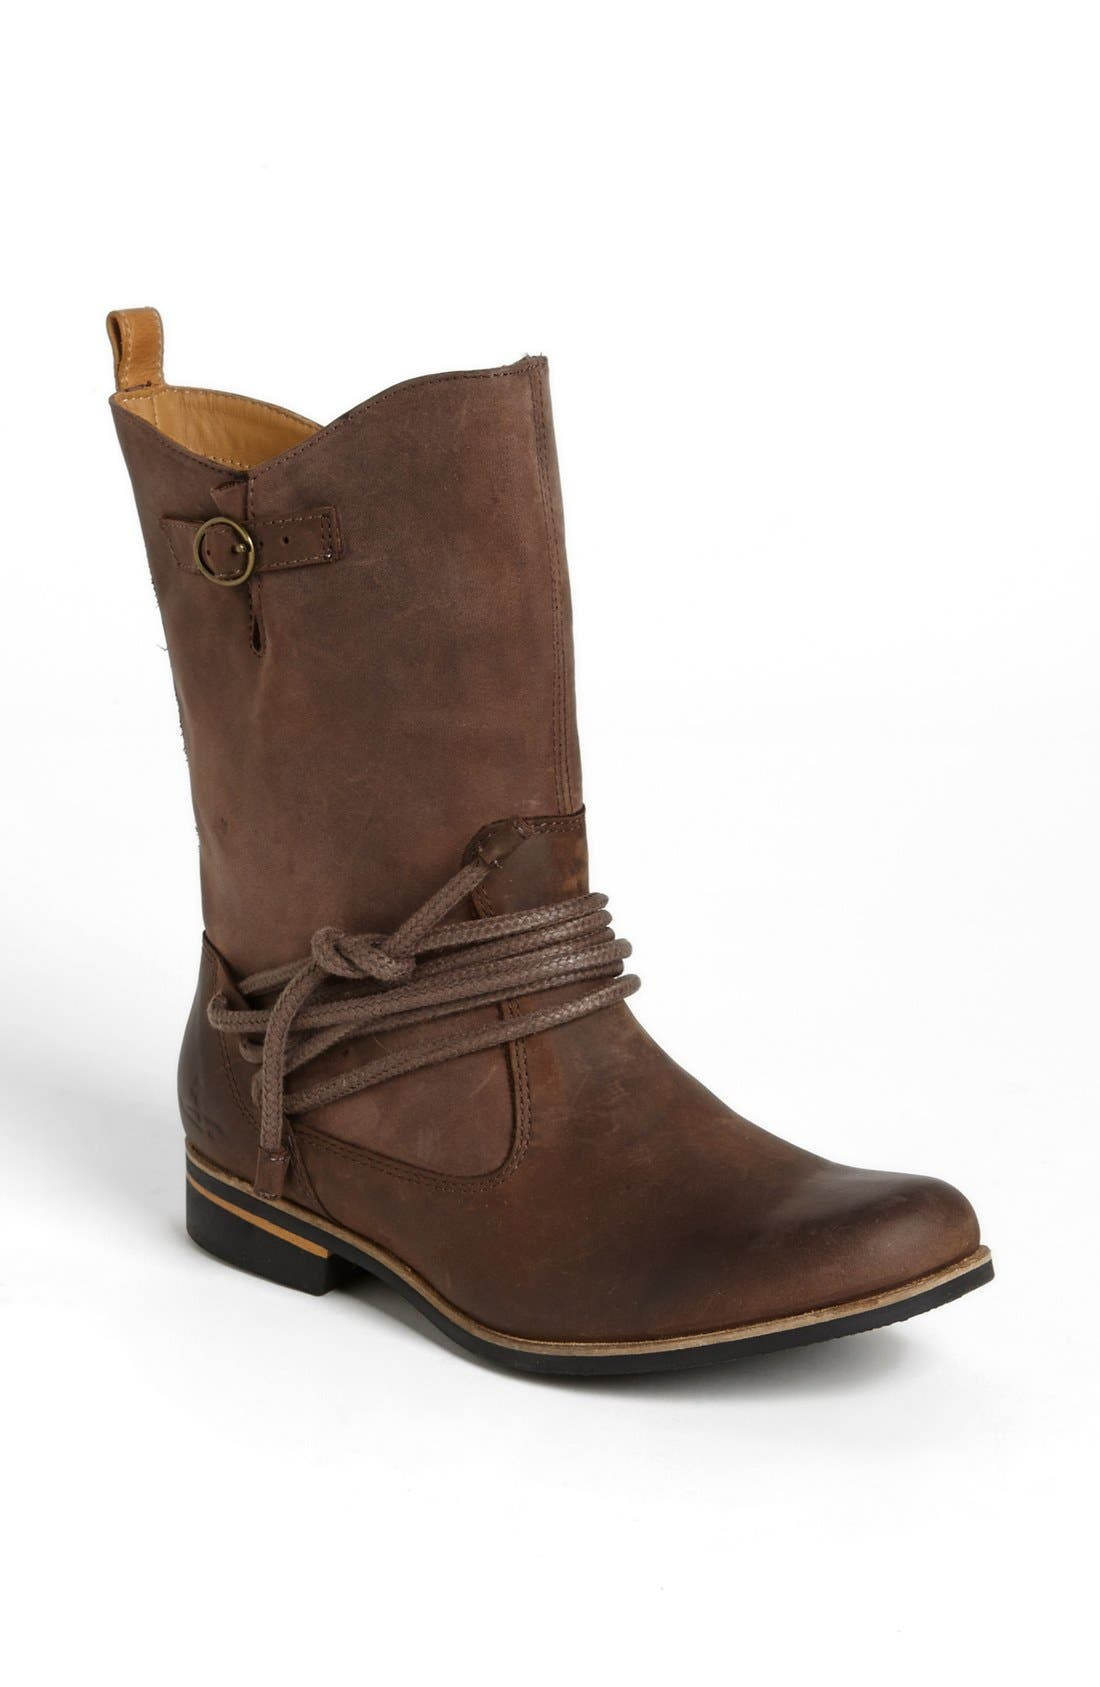 Main Image - J SHOES 'Victoria' Boot